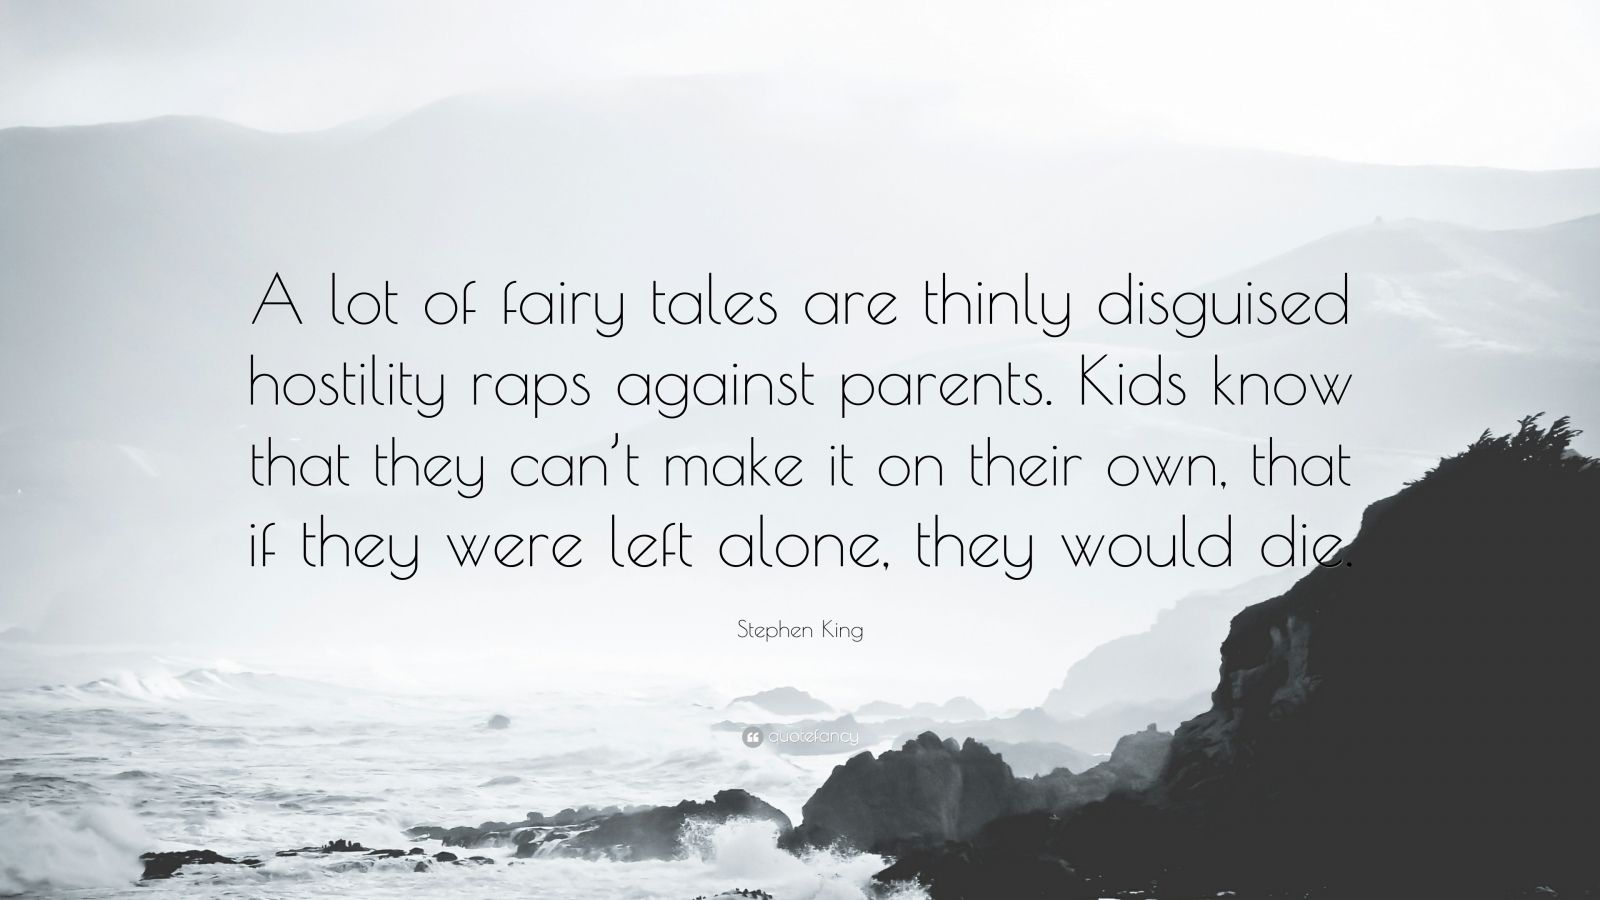 """Stephen King Quote: """"A lot of fairy tales are thinly disguised hostility raps against parents. Kids know that they can't make it on their own, that if they were left alone, they would die."""""""